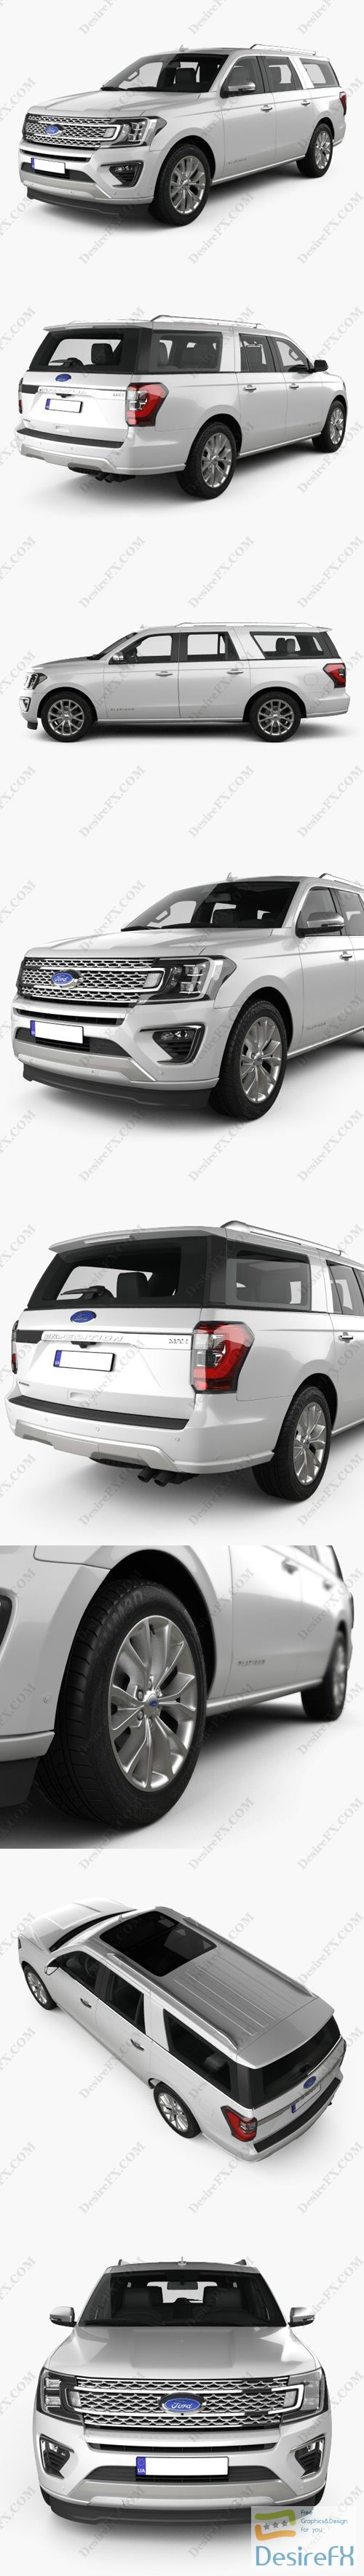 3d-models - Ford Expedition MAX Platinum 2017 3D Model